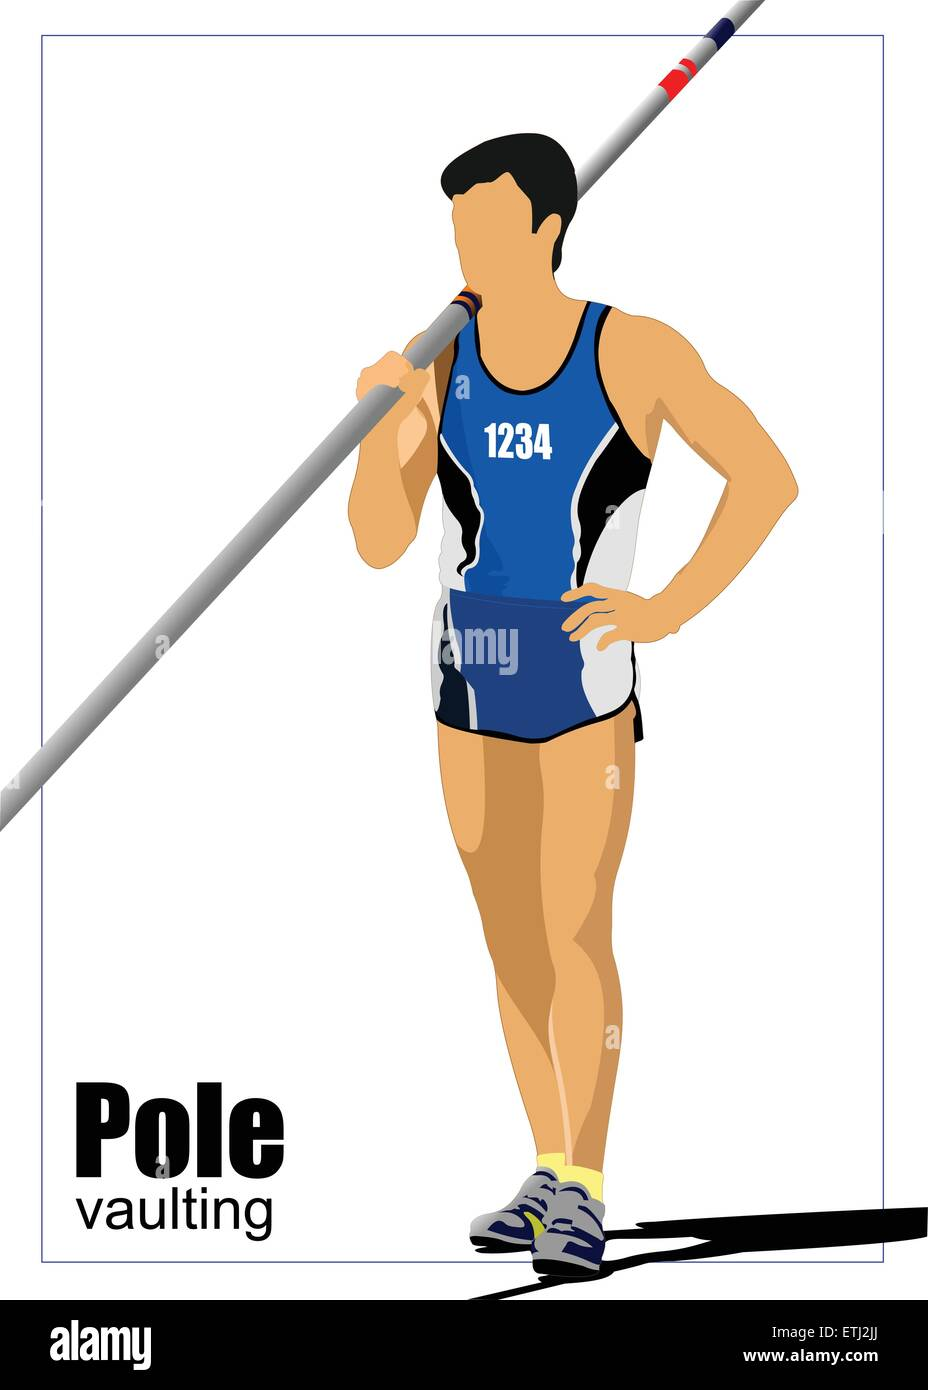 Athlete pole vaulting. Track and field. Vector illustration. Stock Vector